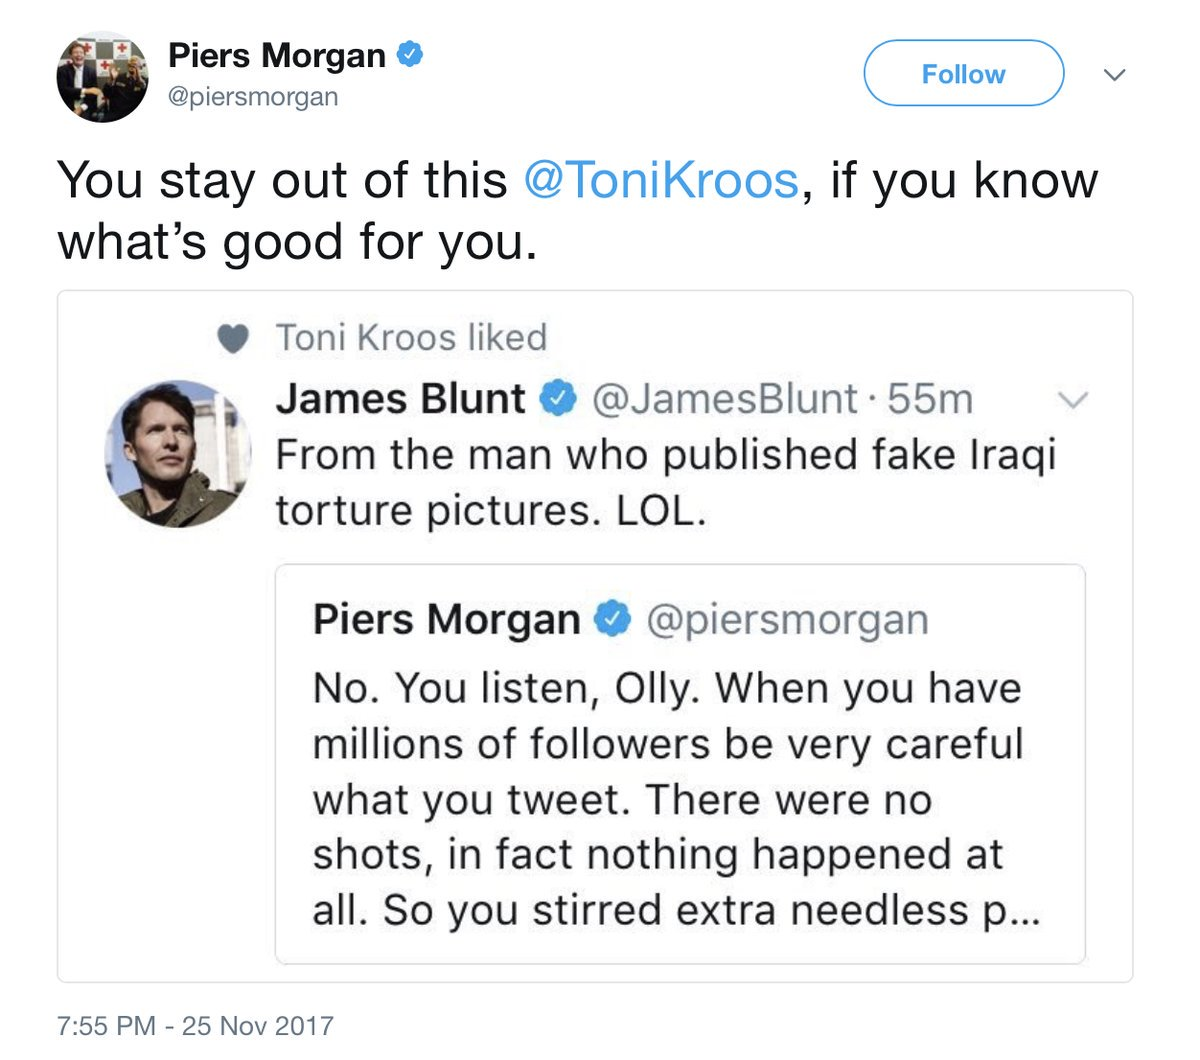 James Blunt has pop at Piers Morgan, Toni Kroos Likes it. Piers has a go at Kroos. Kolo Toure jumps in. Morgan responds to Kolo. Kolo responds and refers to himself in the third person. This is a great f*cking game, folks.